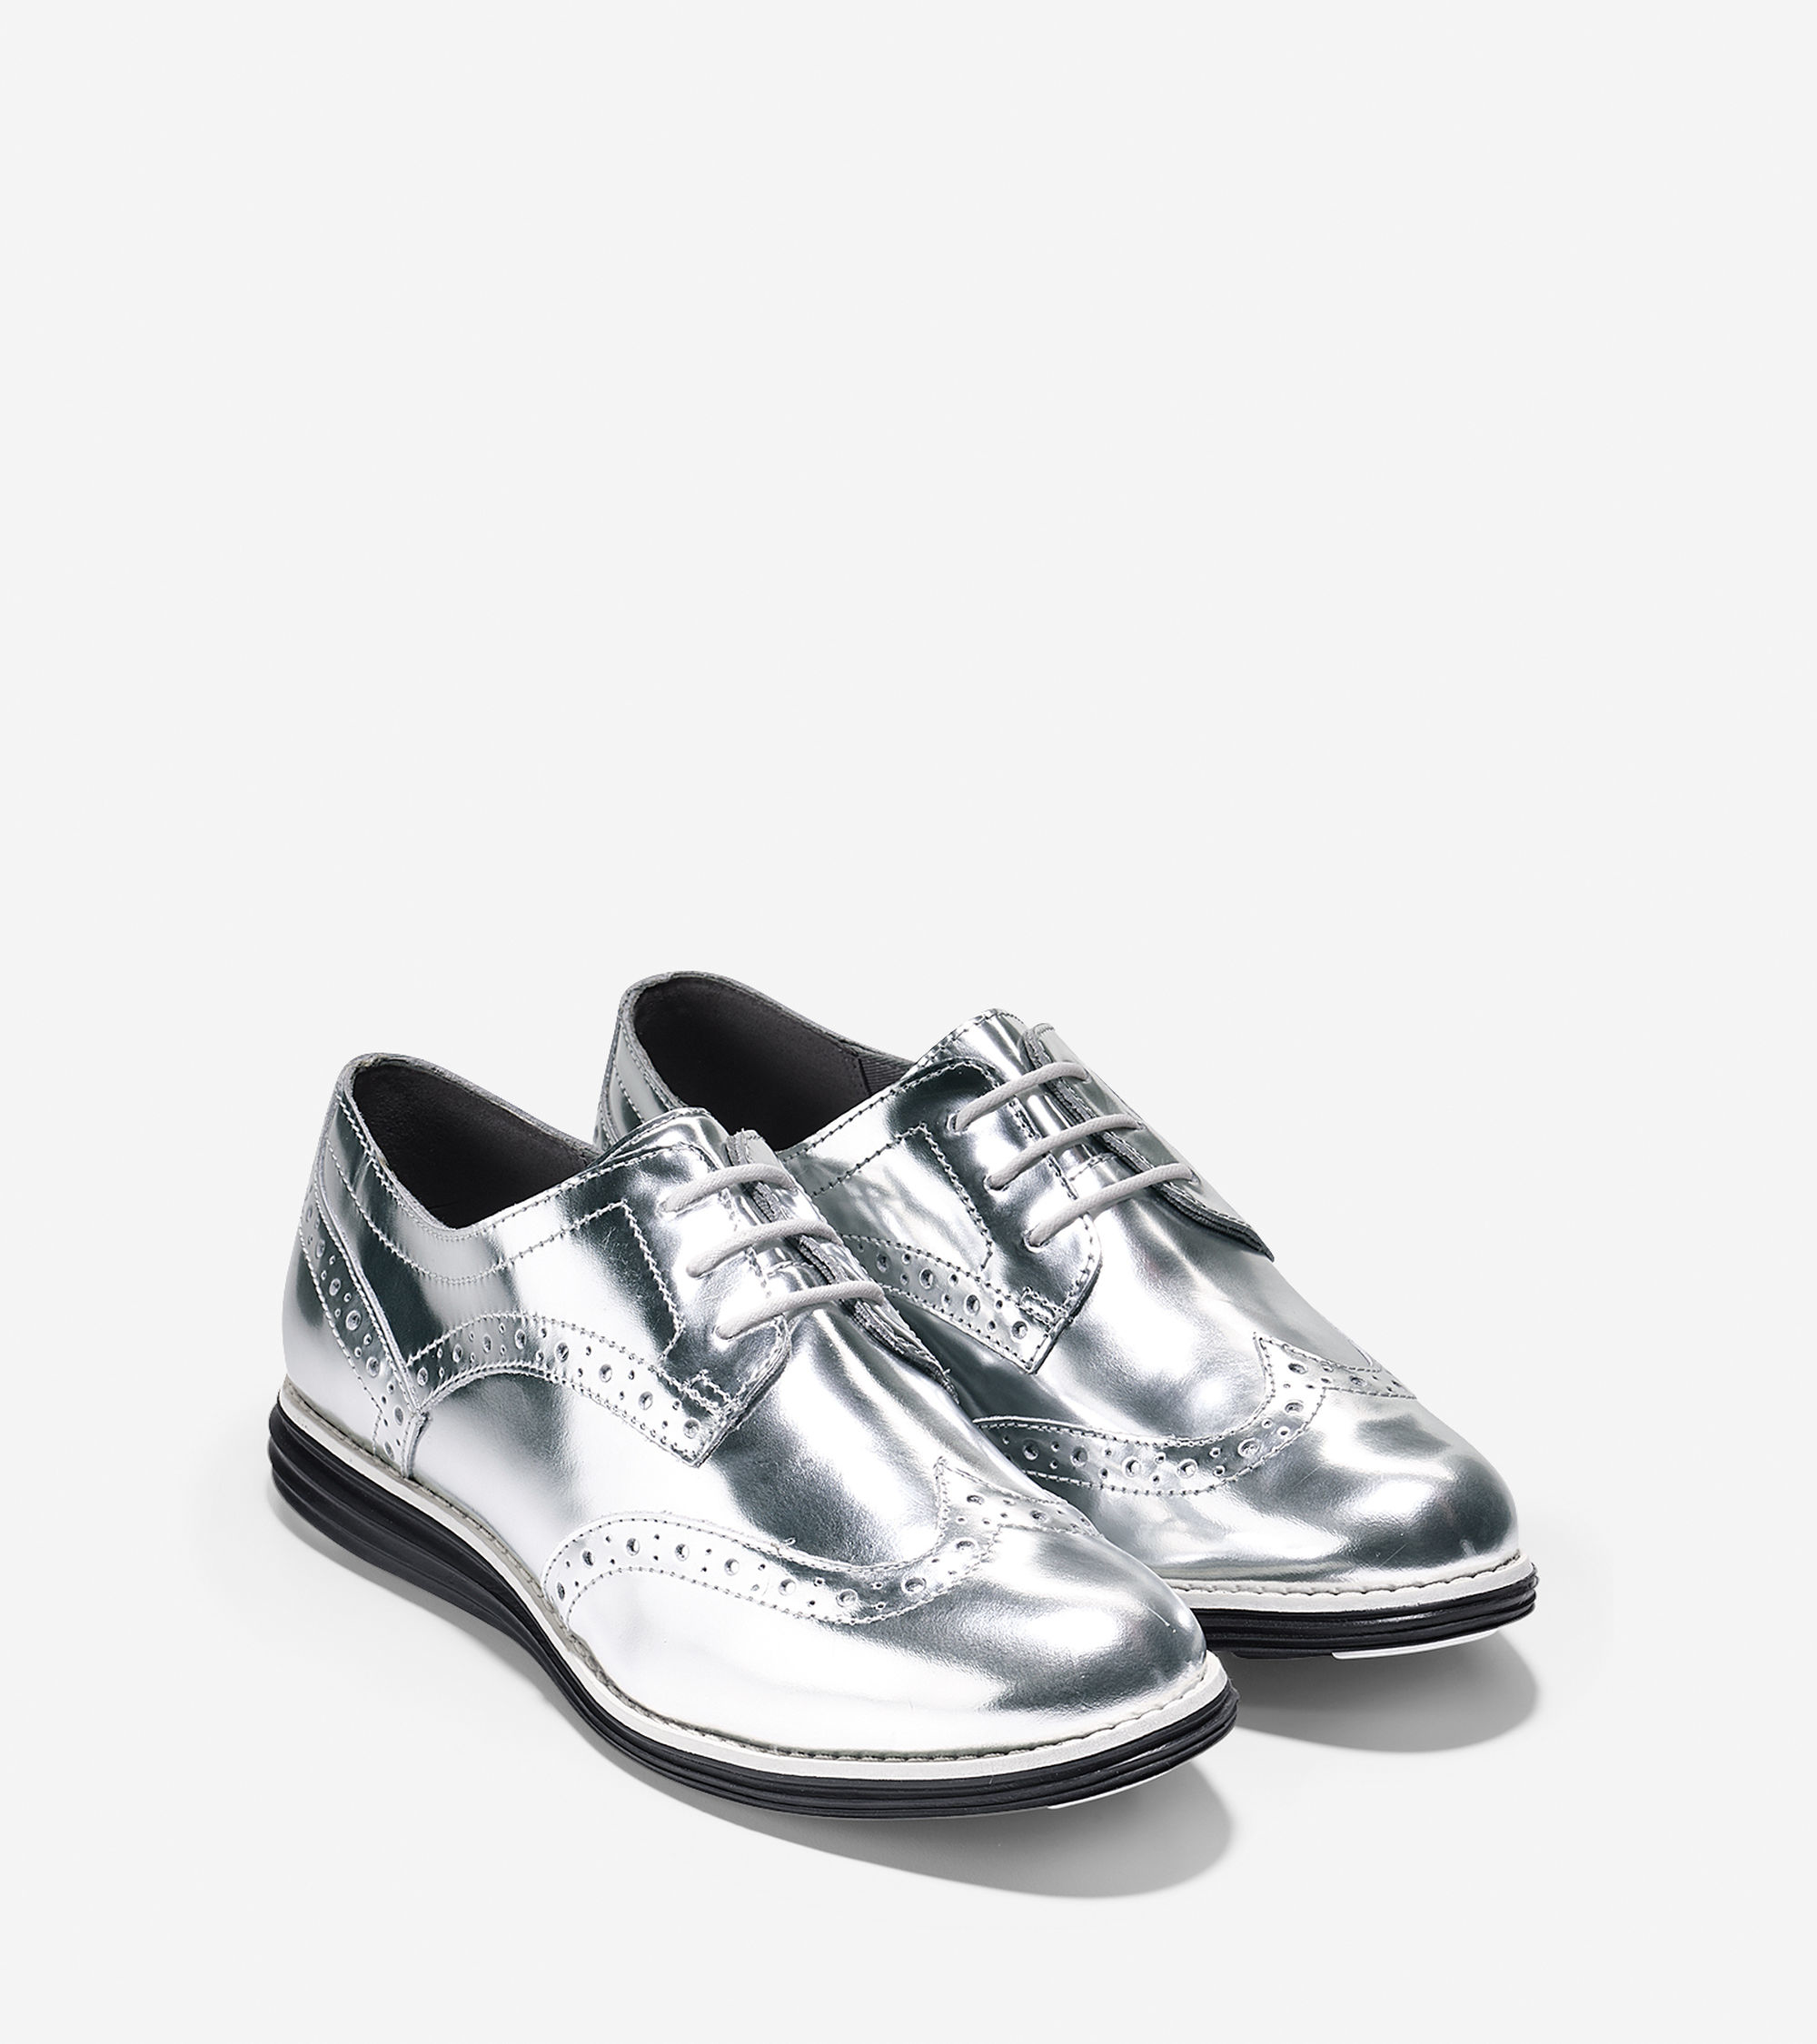 cole haan original grand leather oxford shoes in metallic lyst. Black Bedroom Furniture Sets. Home Design Ideas